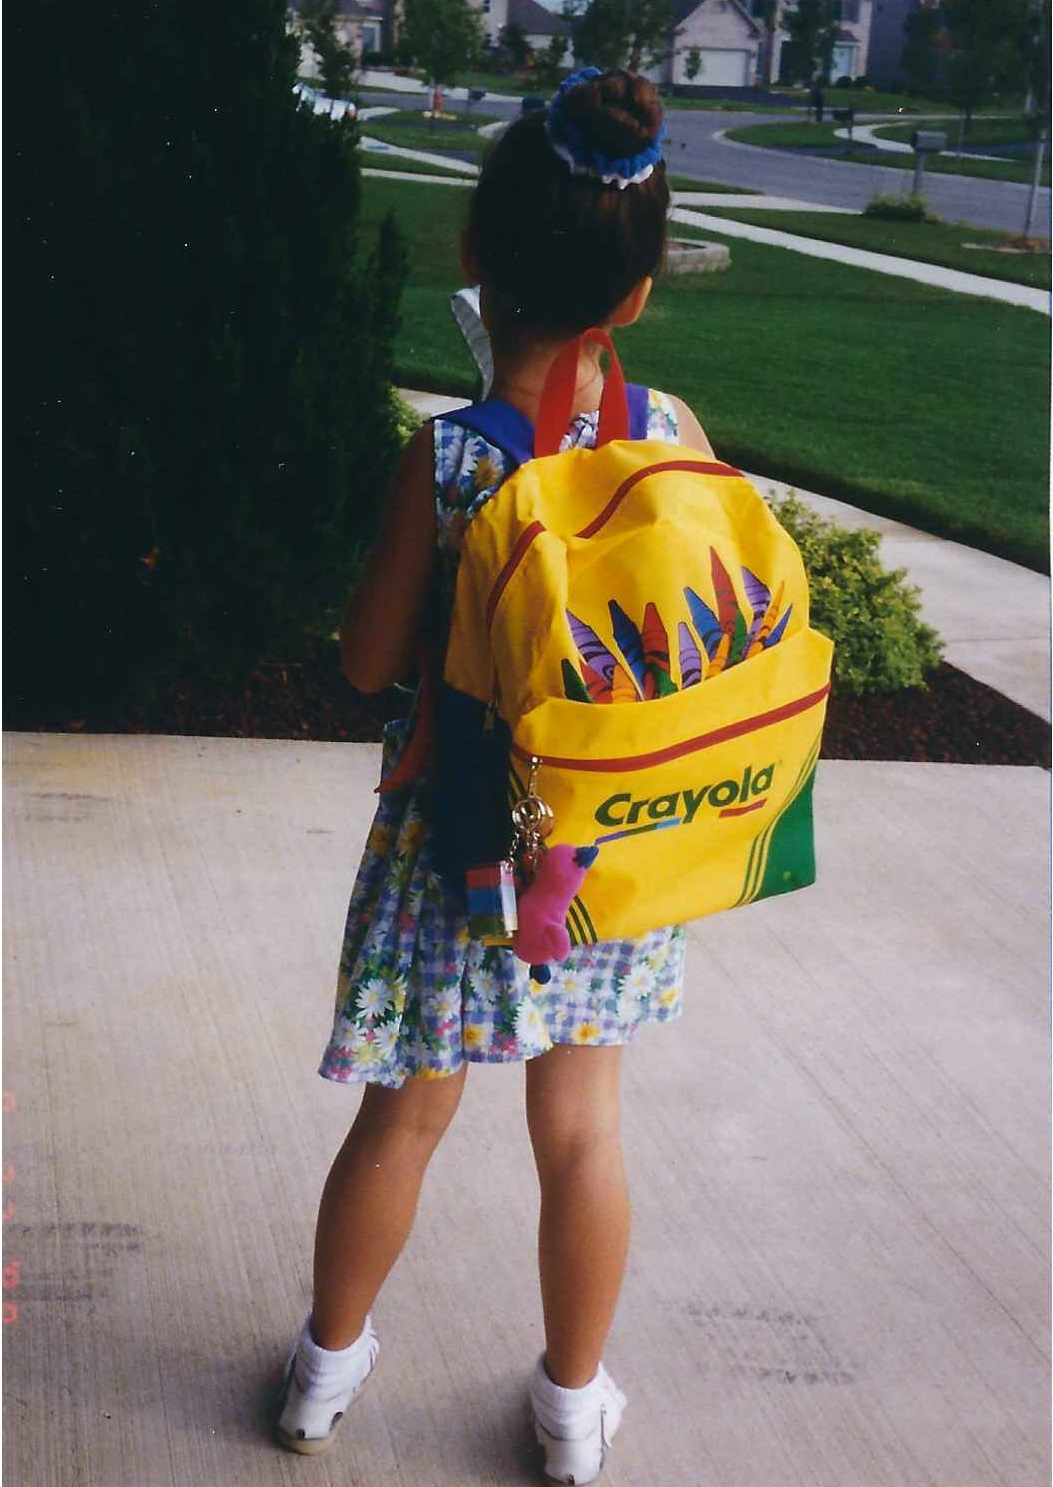 girl with crayon backpack